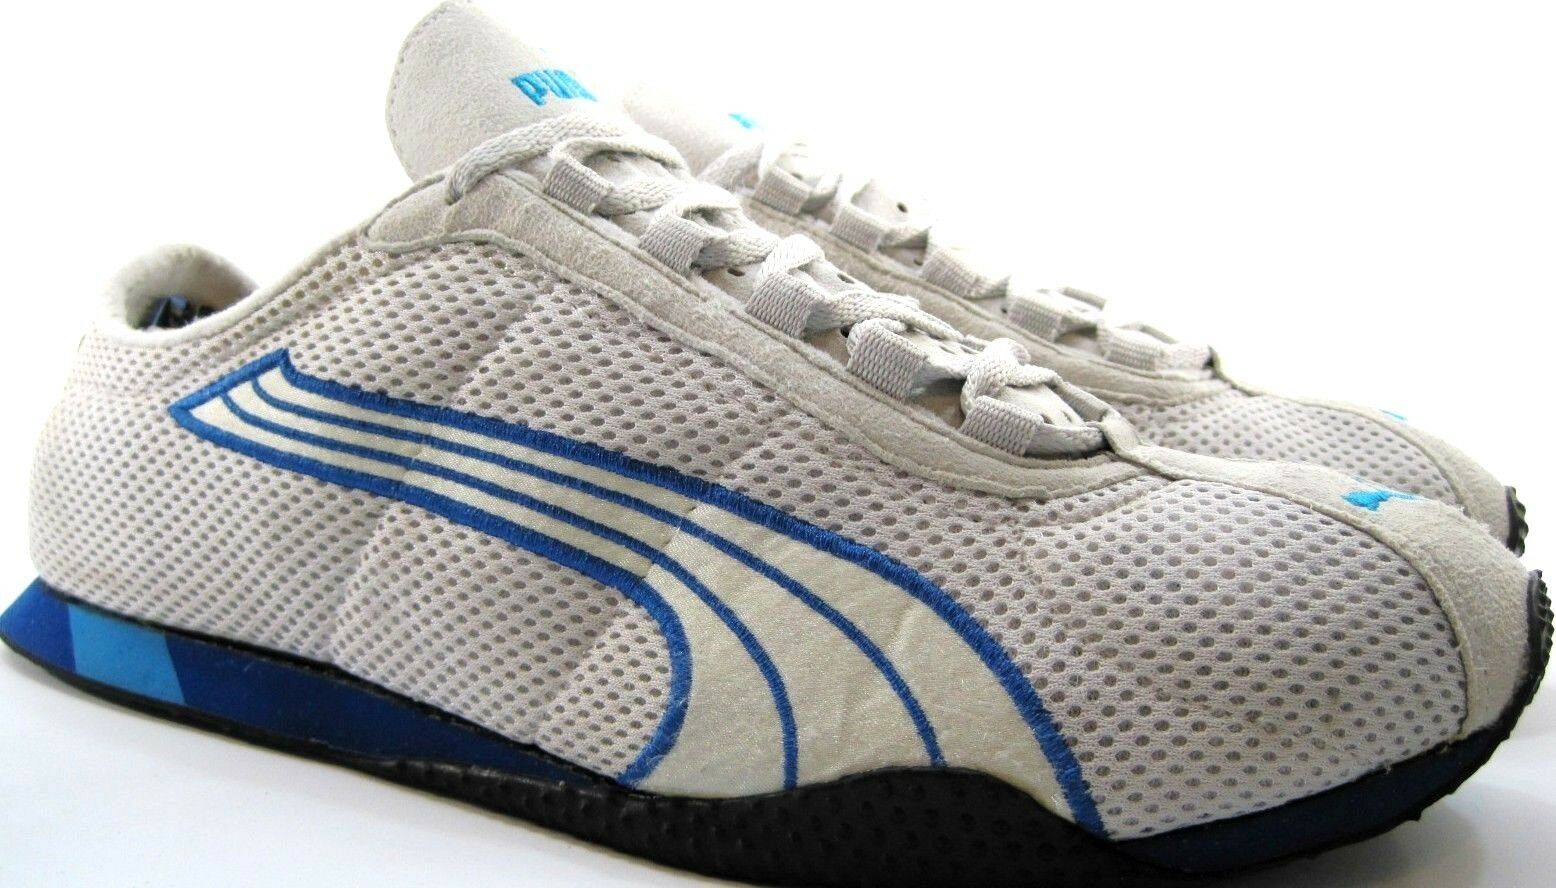 Puma Men Athletic Trainers Running Shoes Size 13 Euro 47 Gray Blue Mesh Leather